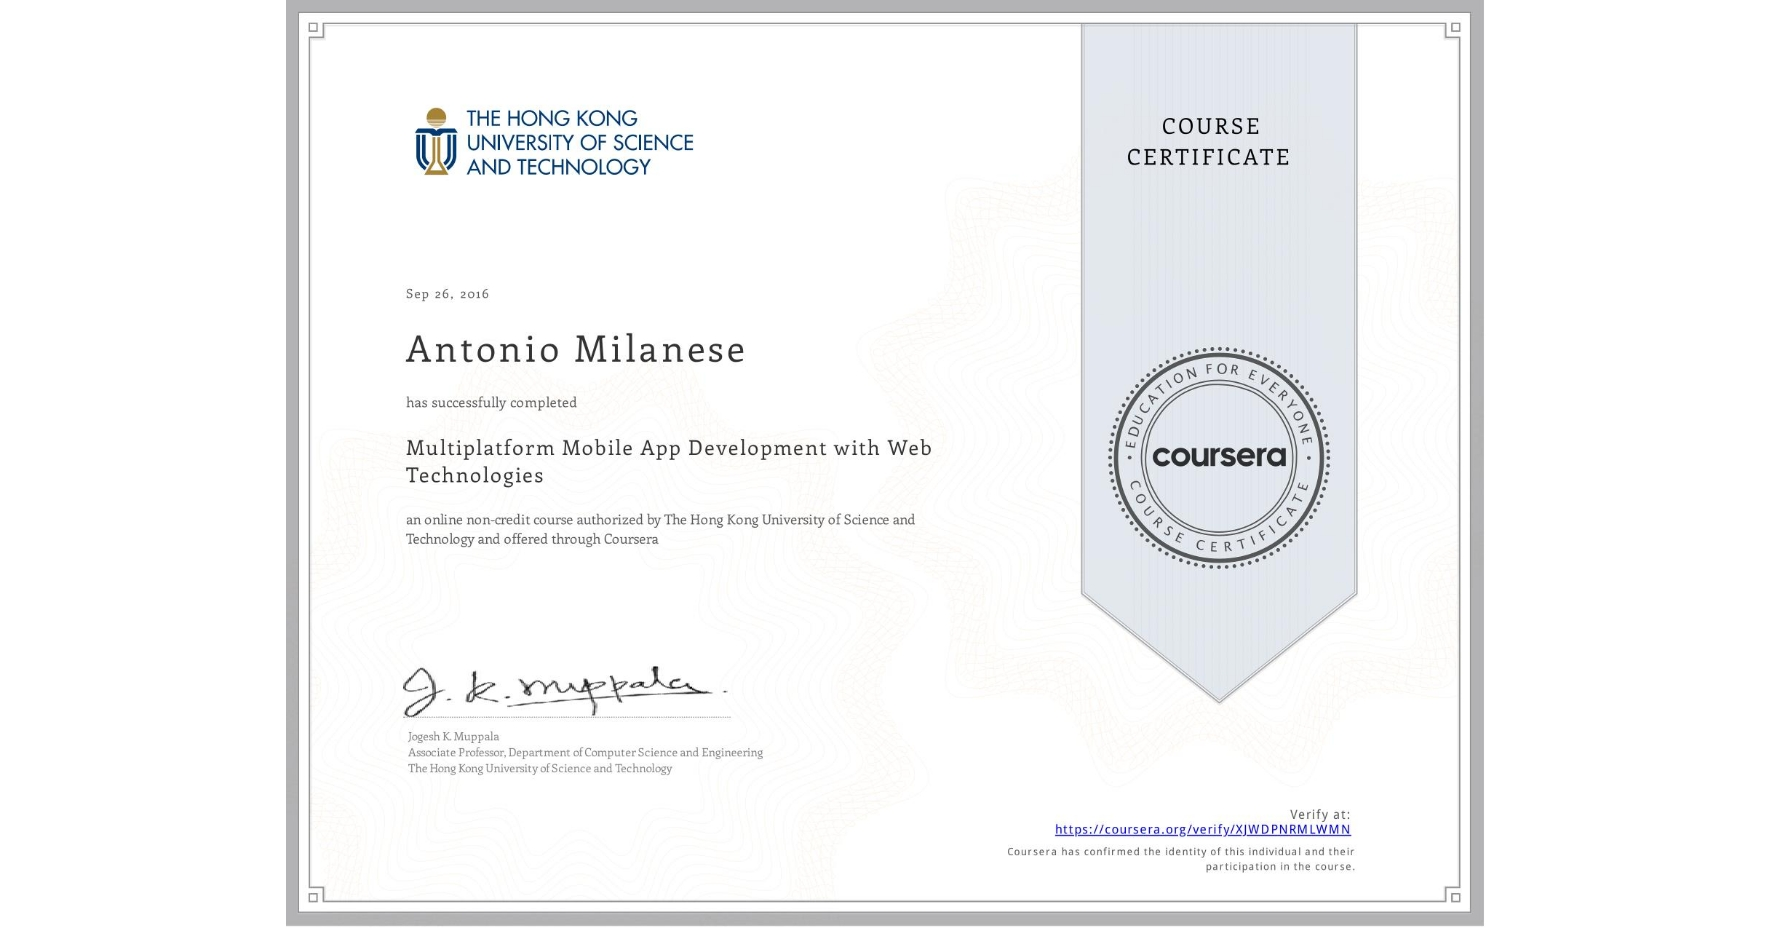 View certificate for Antonio Milanese, Multiplatform Mobile App Development with Web Technologies, an online non-credit course authorized by The Hong Kong University of Science and Technology and offered through Coursera